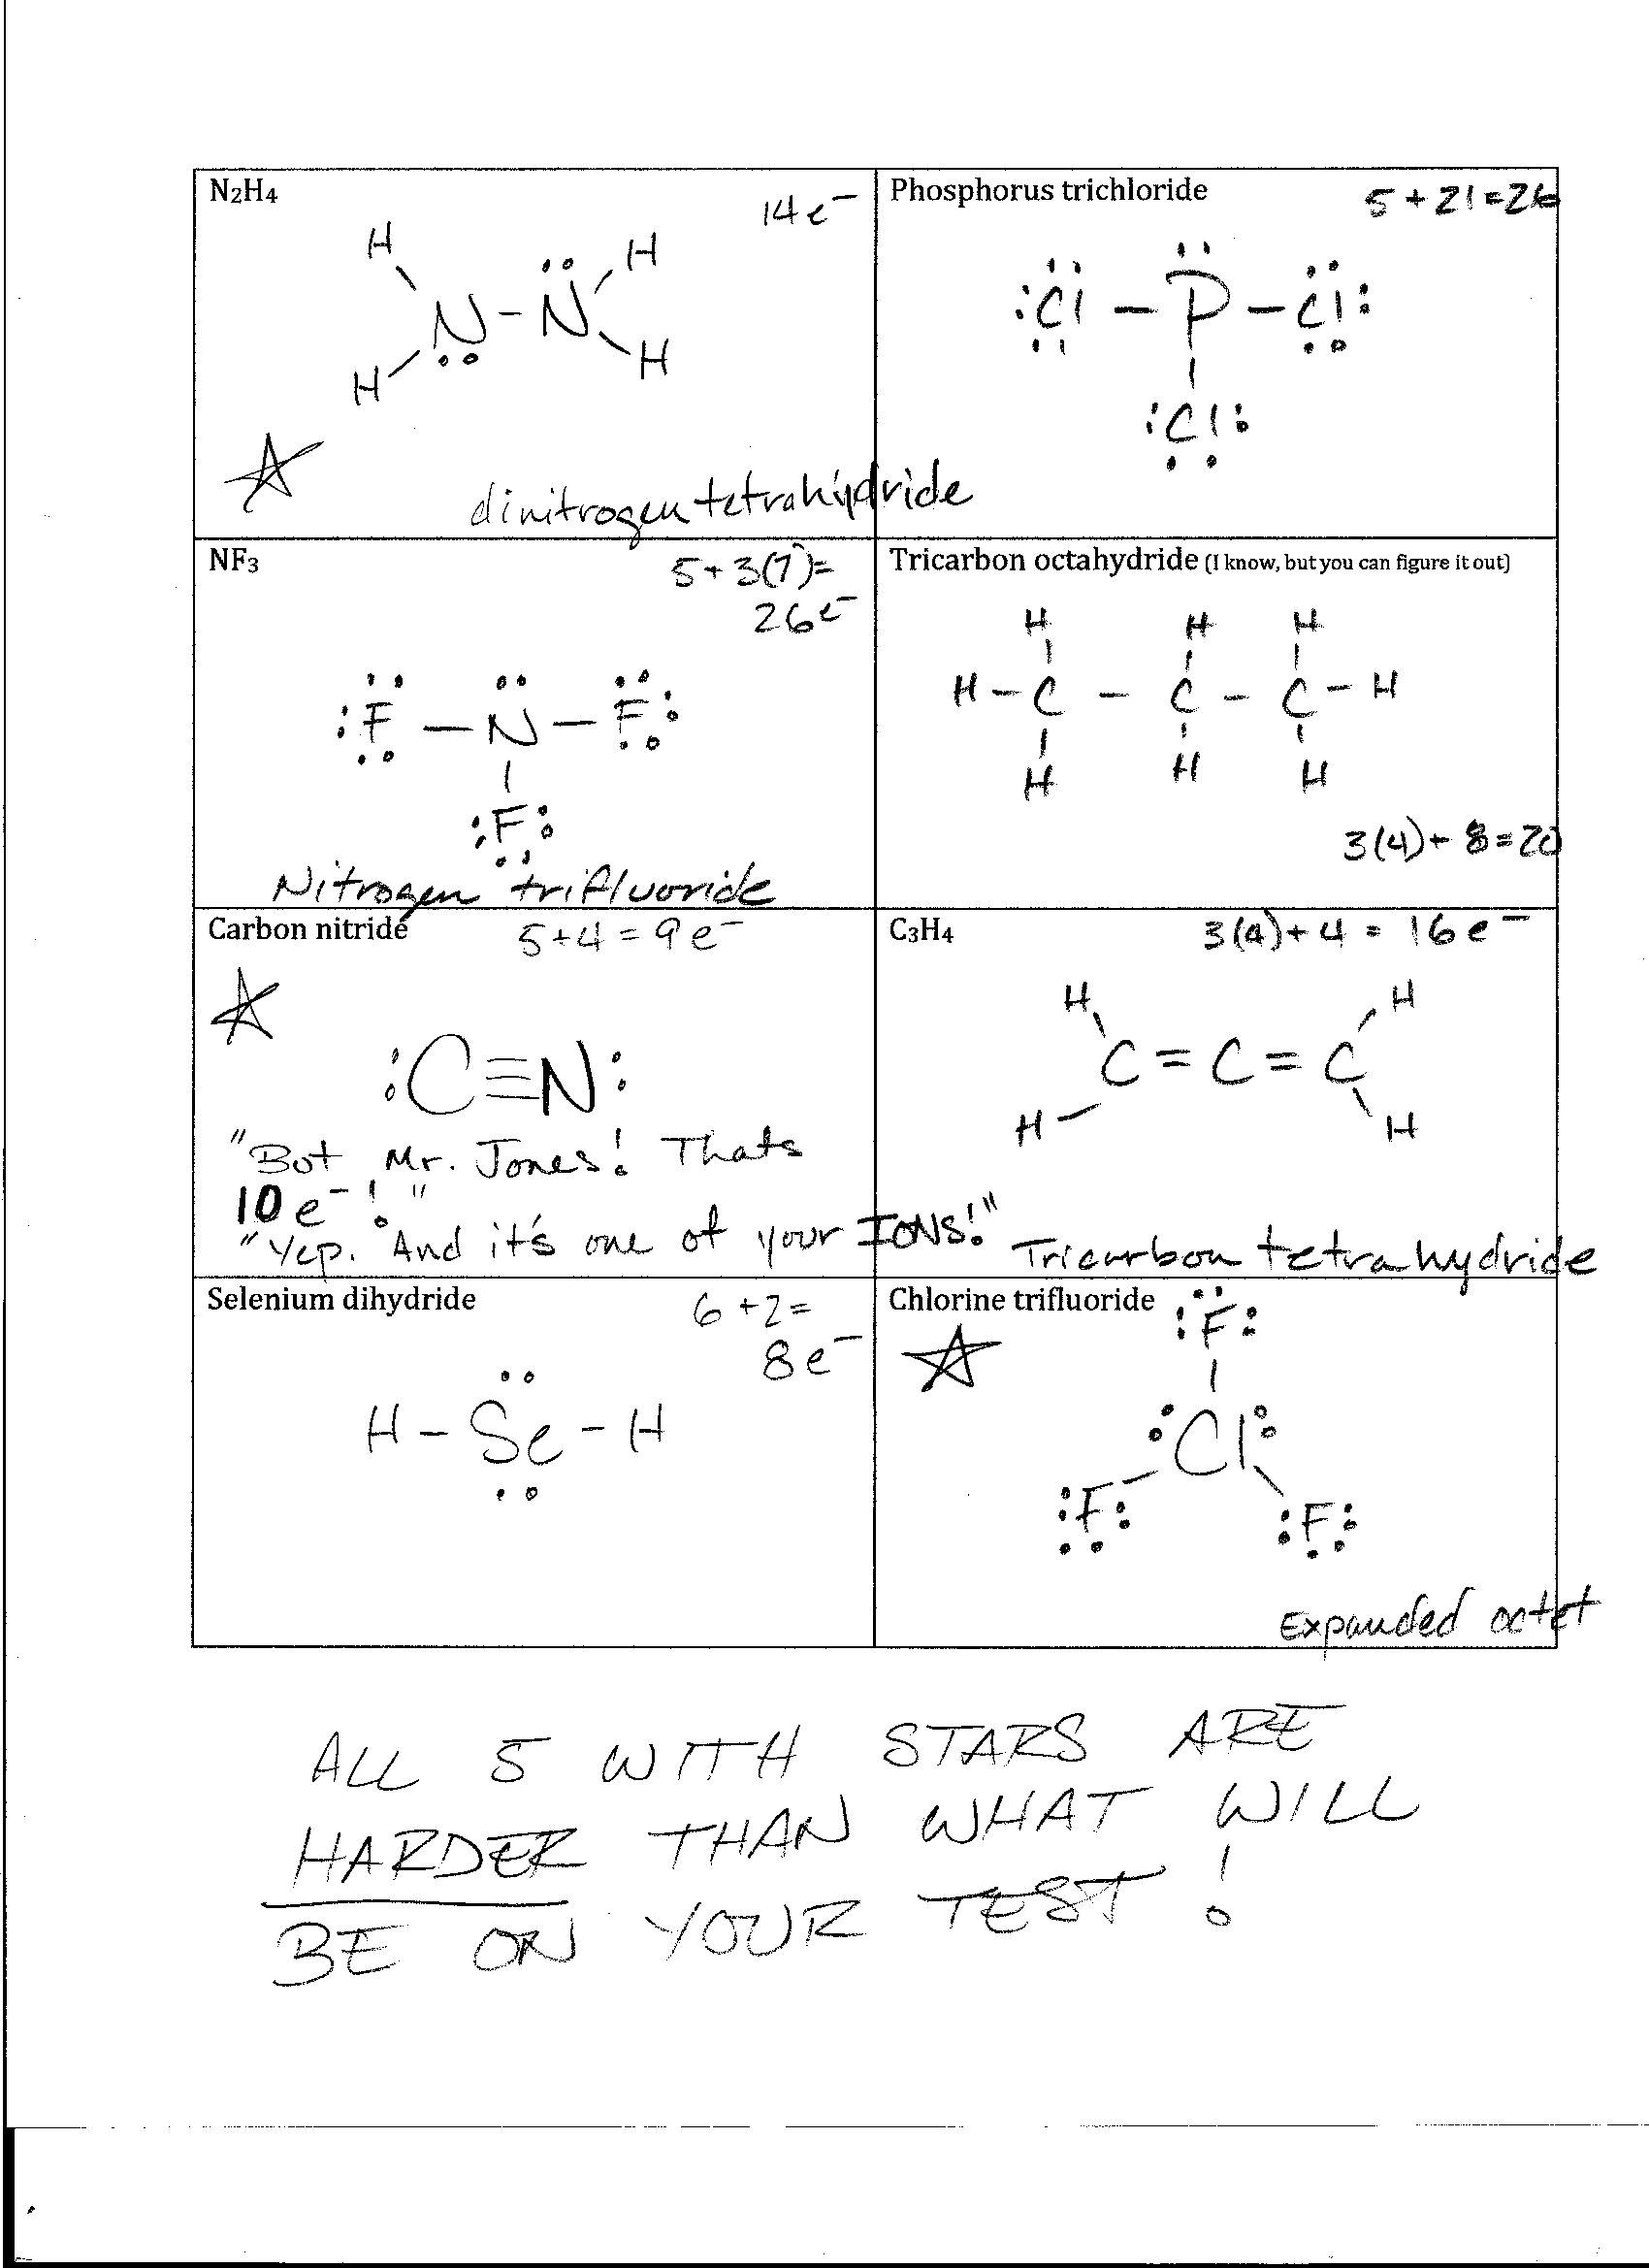 Worksheet Lewis Structure Completed